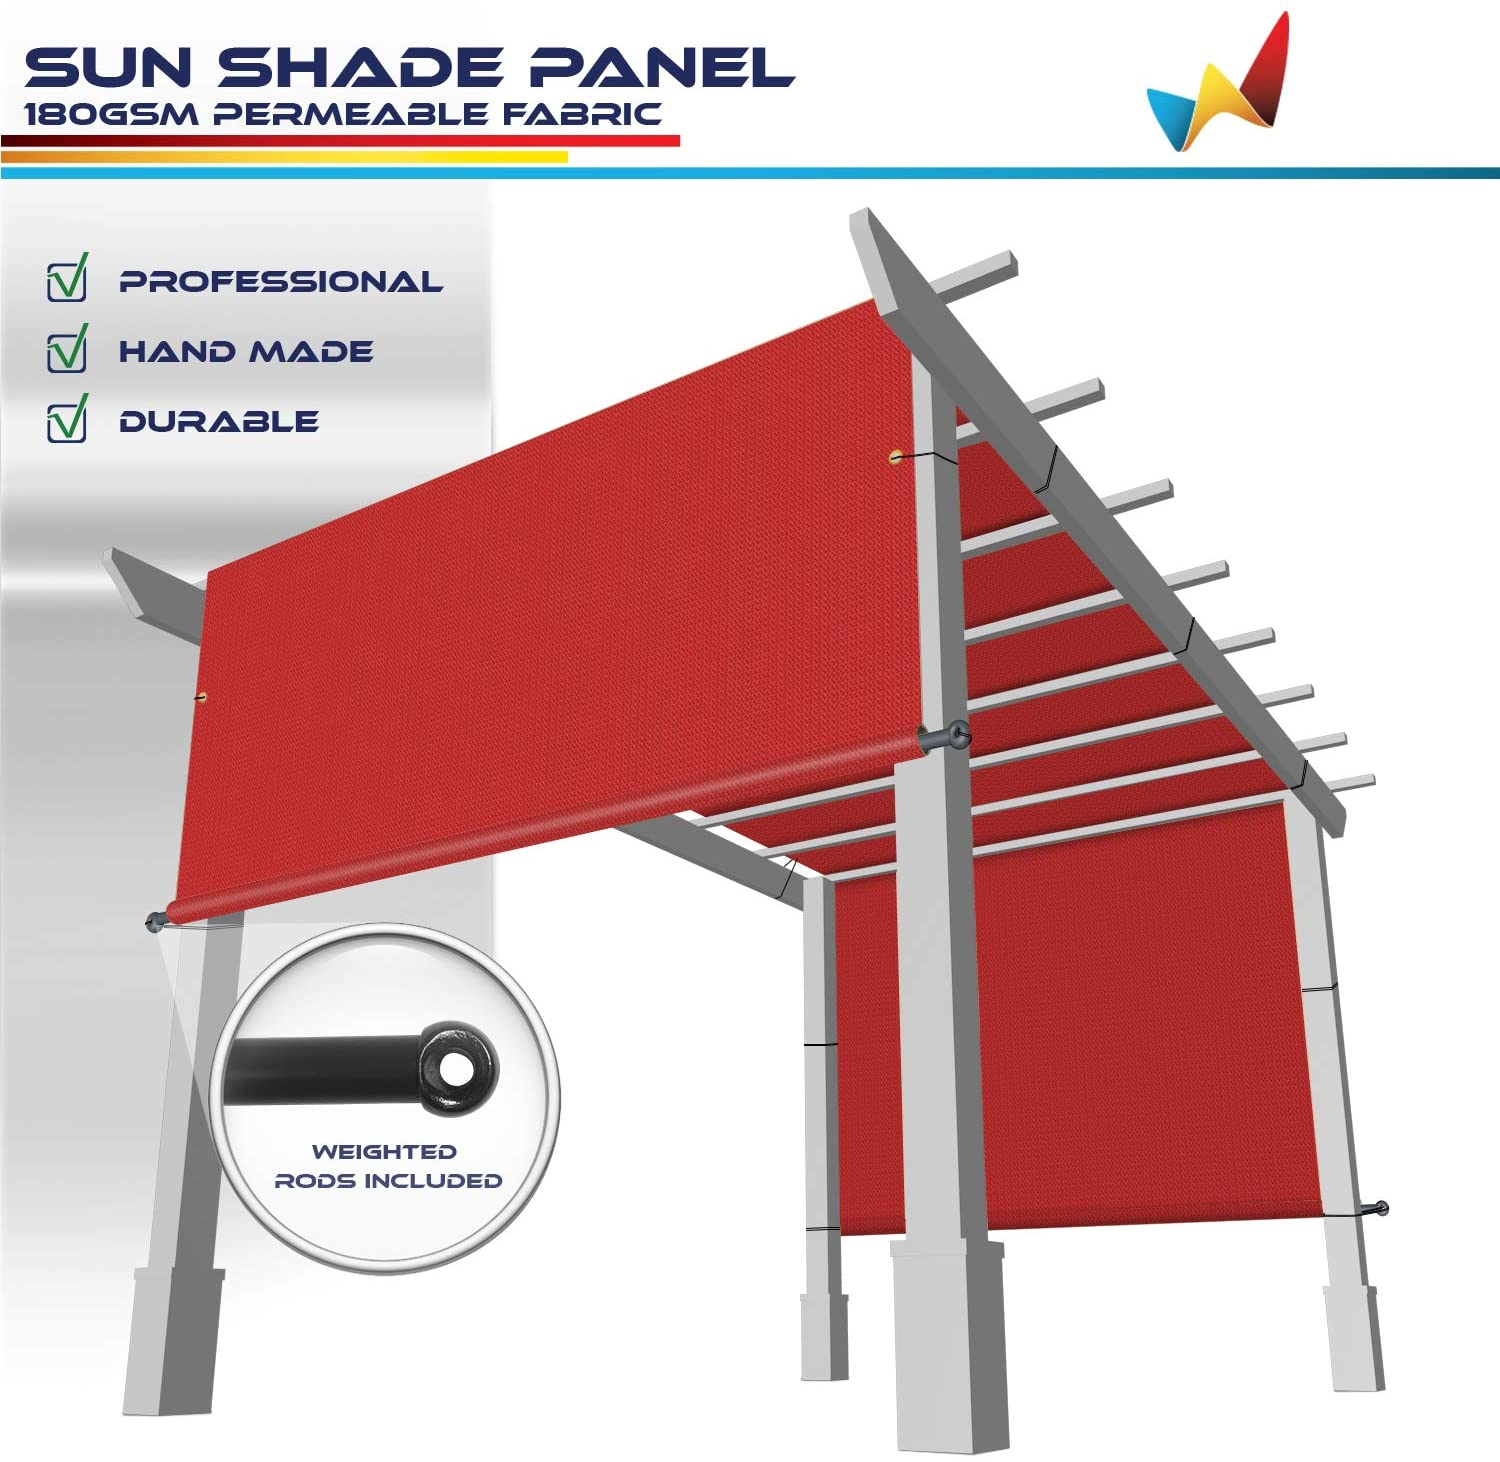 Windscreen4less 10' x 16' Universal Replacement Shade Cover Canopy for Pergola Patio Porch Privacy Shade Screen Panel with Grommets on 2 Sides Includes Weighted Rods Breathable UV Block Red